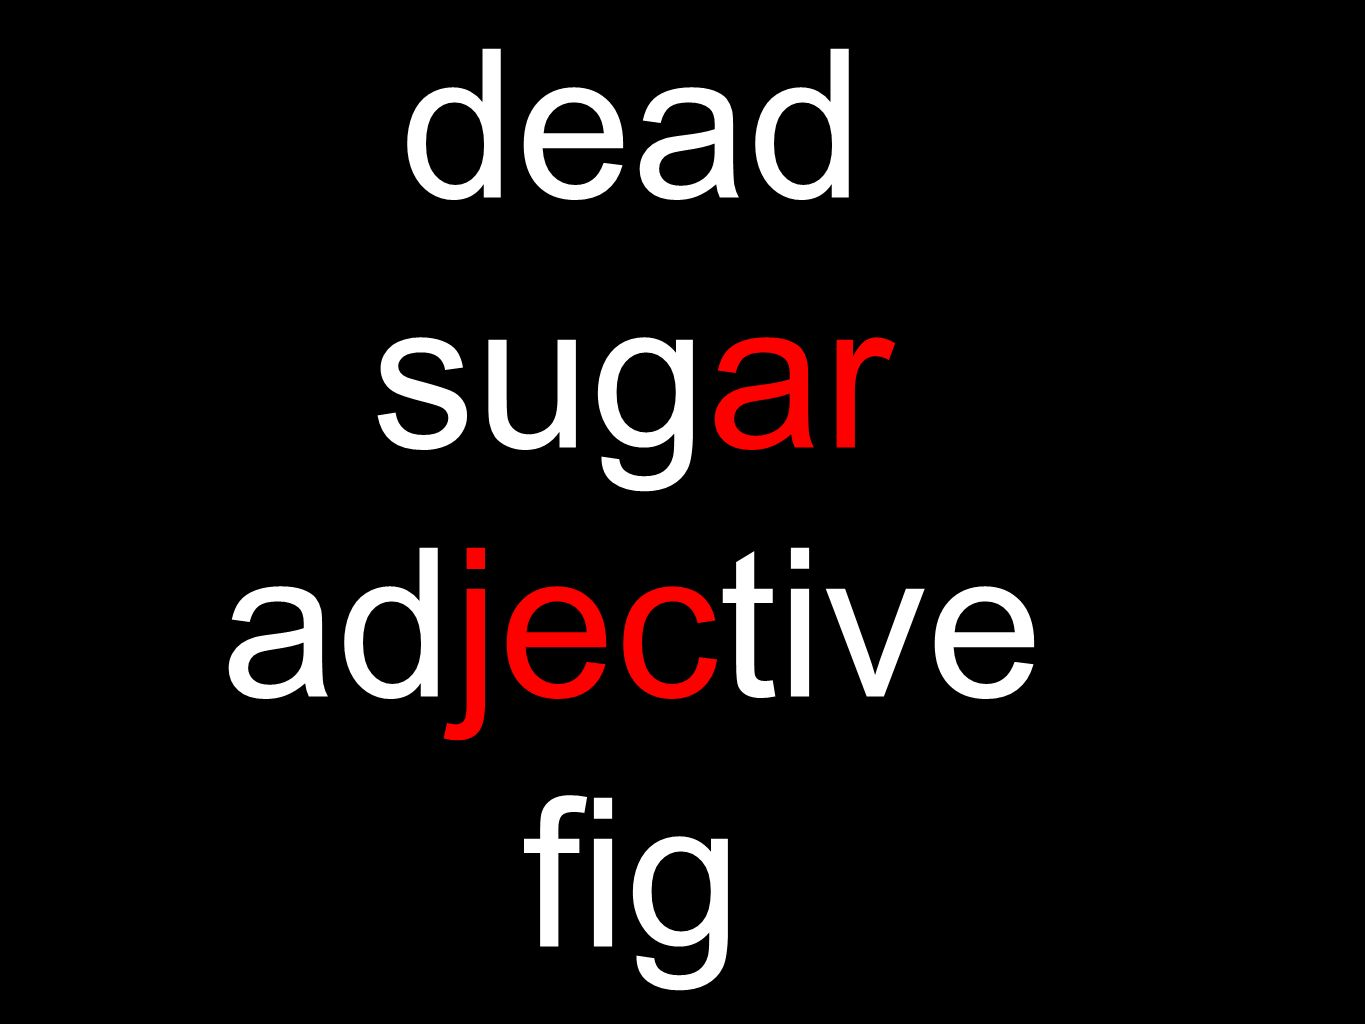 dead sugar adjective fig